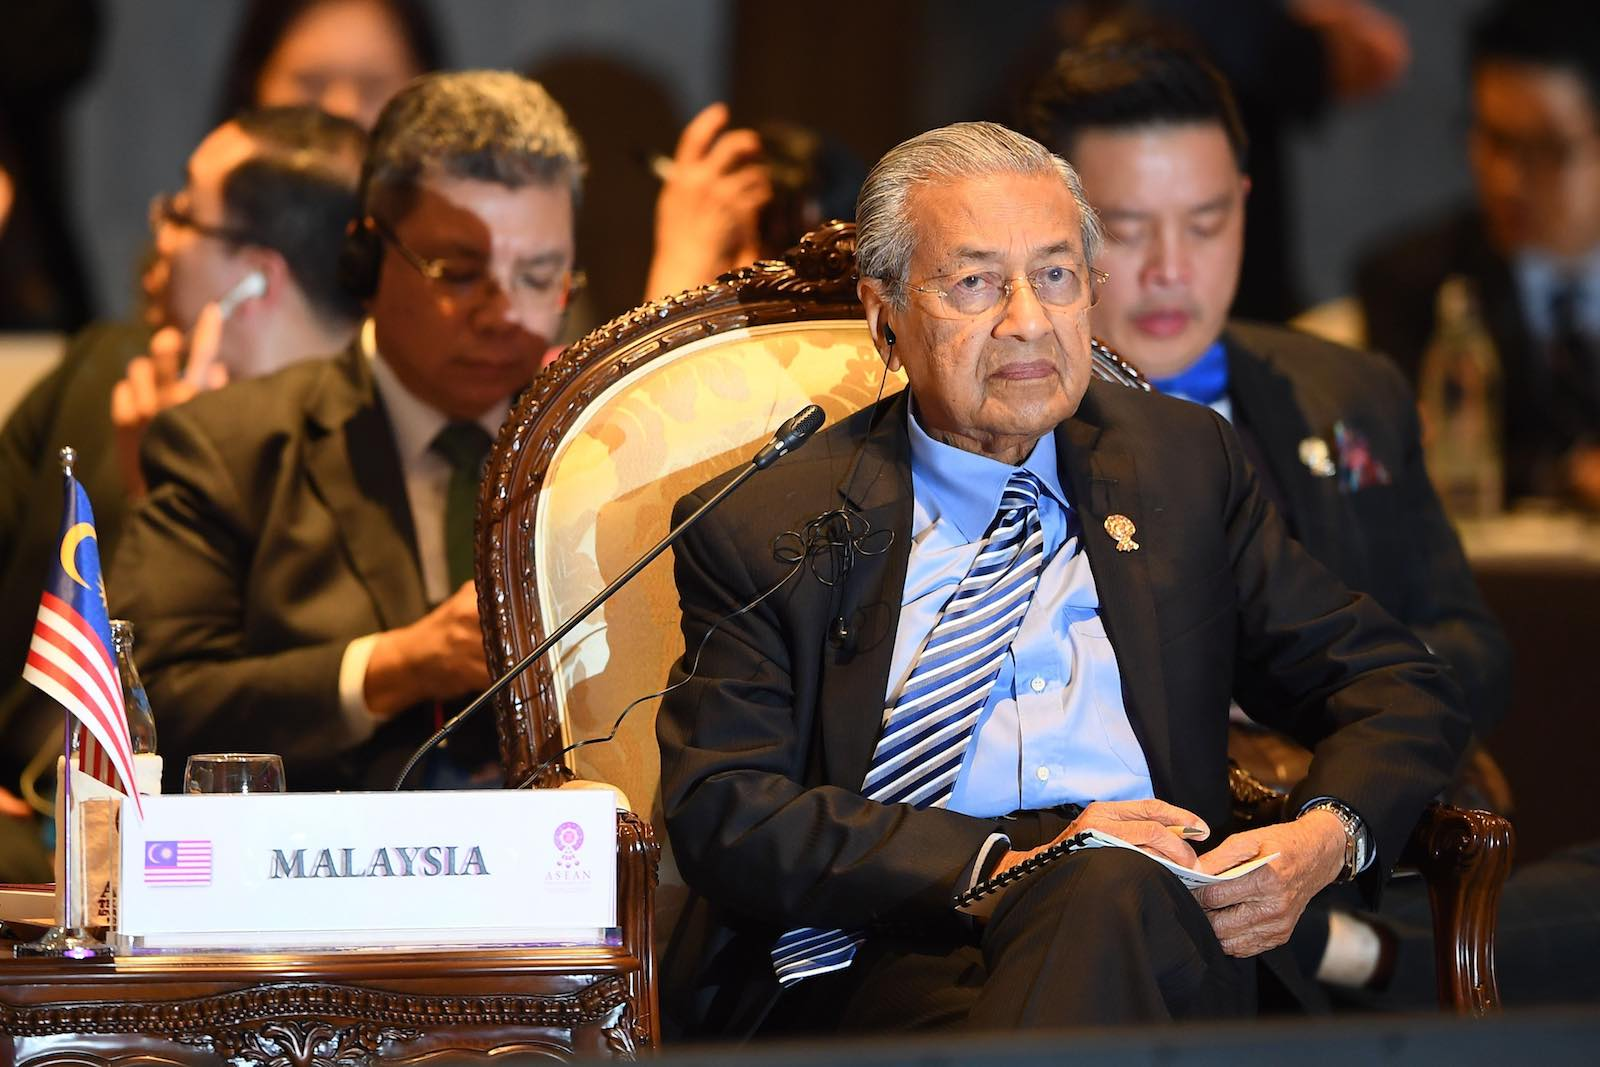 Malaysia's Prime Minister Mahathir Mohamad this month at the East Asia Summit in Bangkok (Photo: Manan Vatsyayana/AFP/Getty Images)